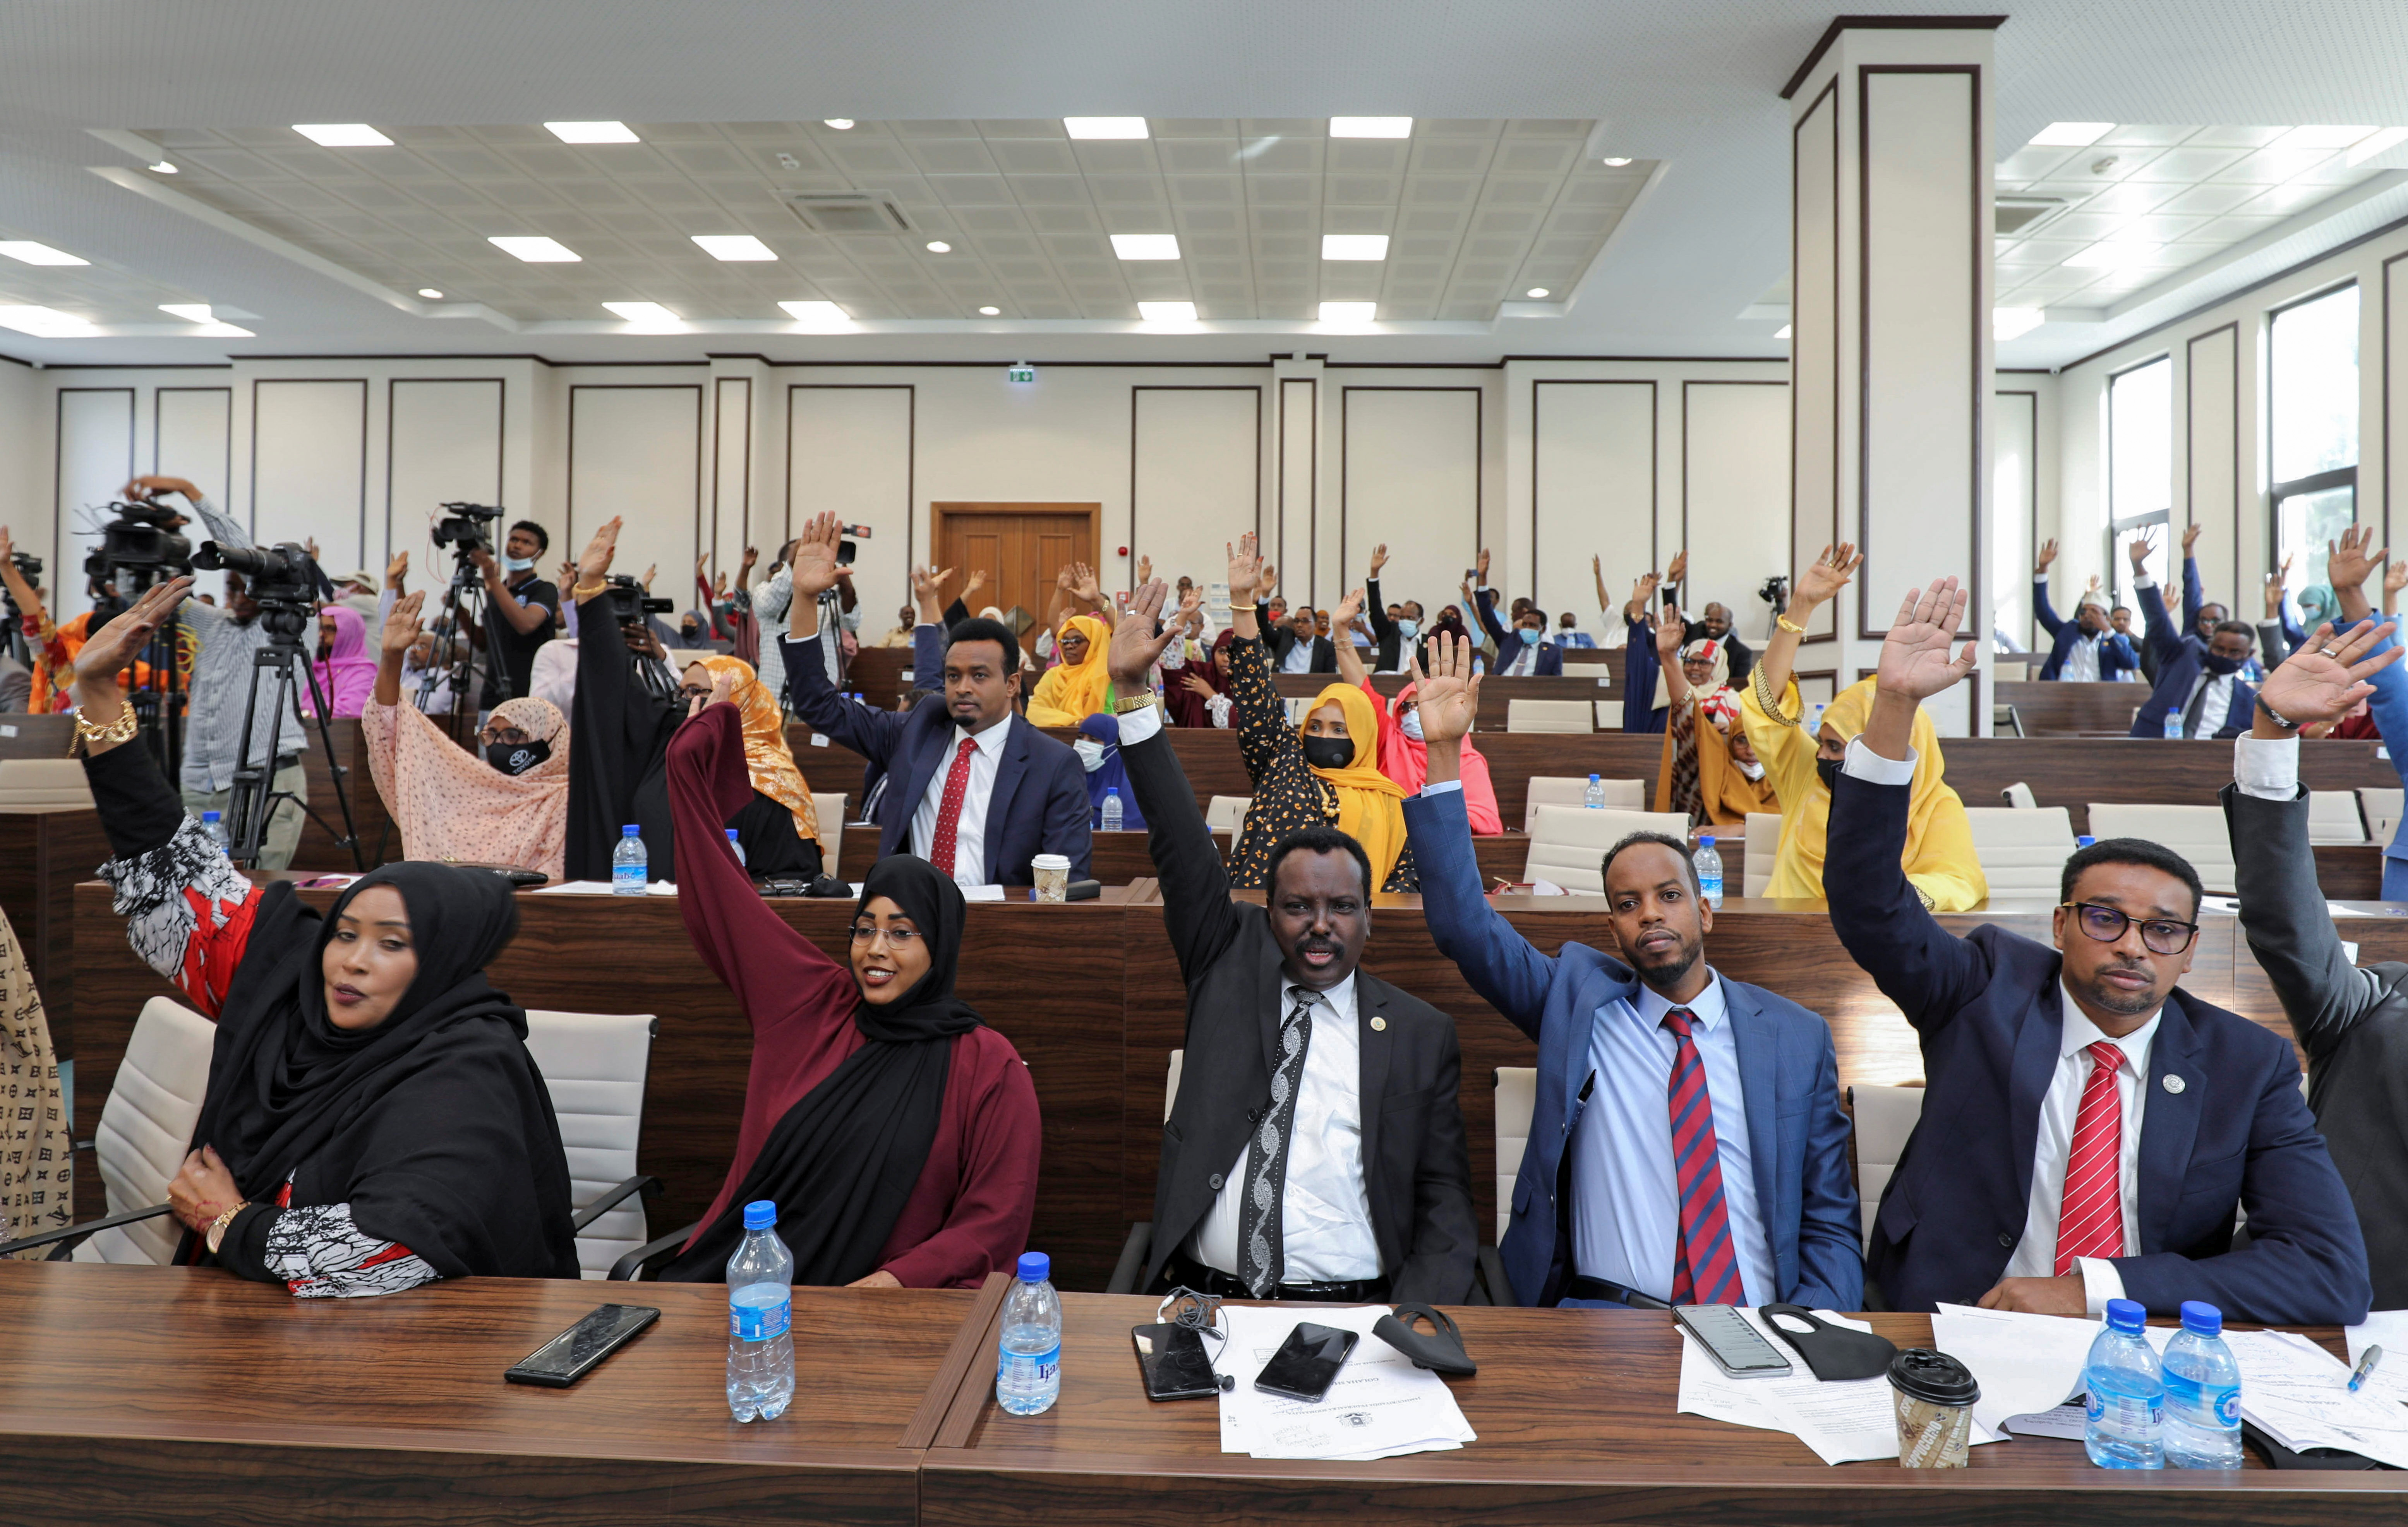 Somali legislators of the lower house of parliament raise their hands to vote to extend President Mohamed Abdullahi Mohamed's term for another two years to let the country prepare for direct elections, in Mogadishu, Somalia April 12, 2021. REUTERS/Feisal Omar